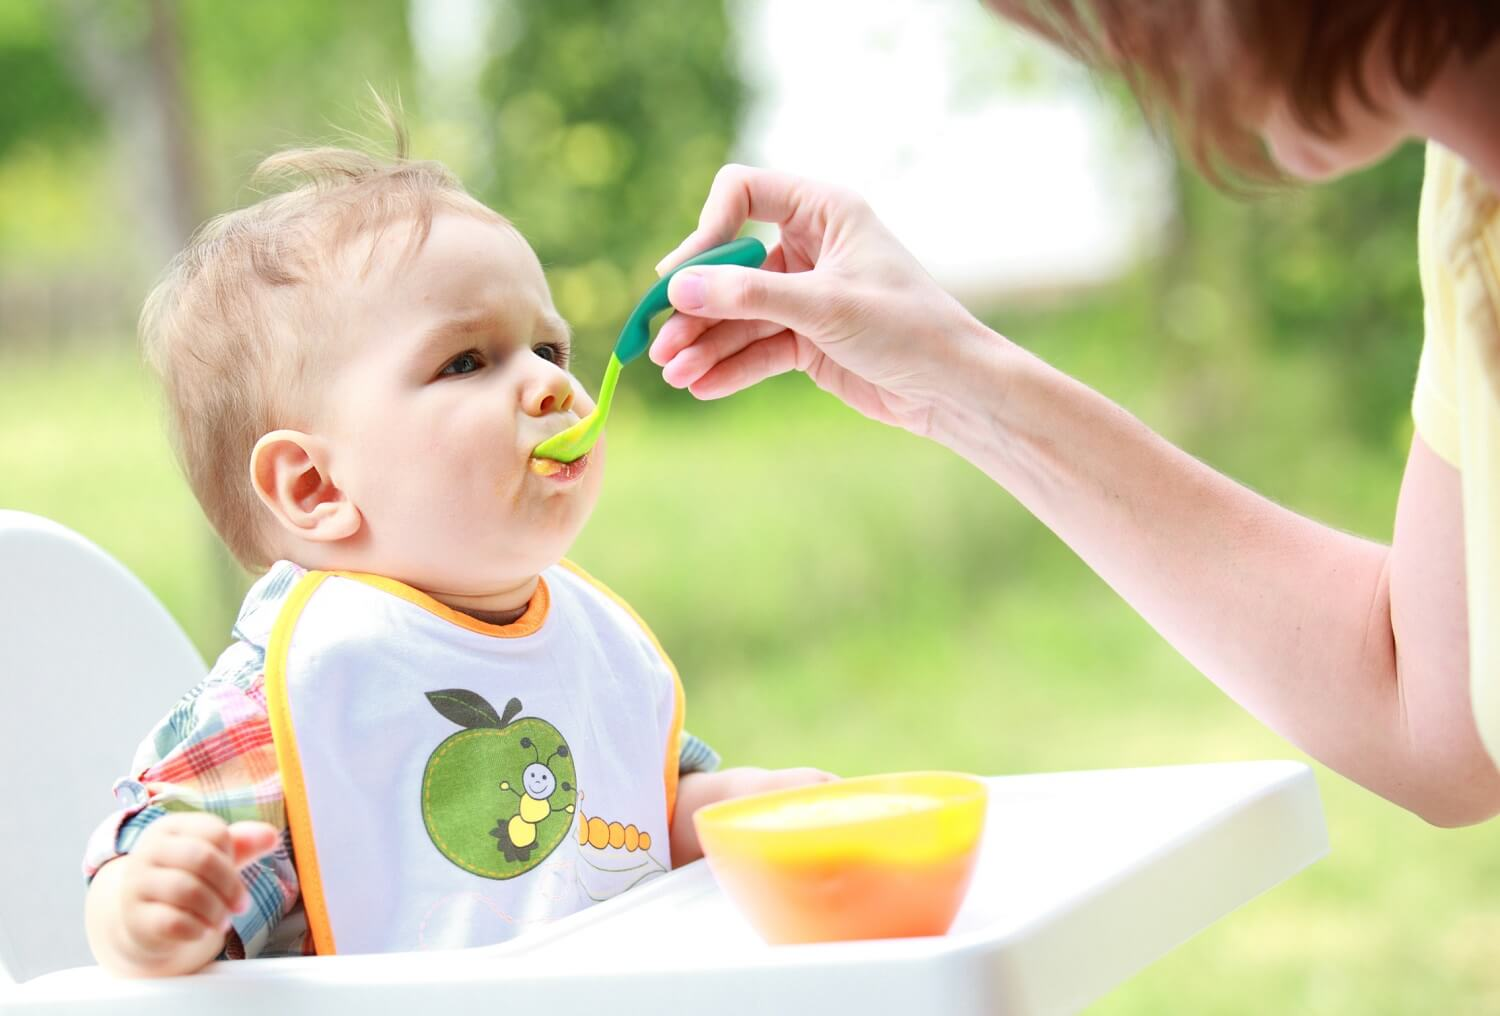 feeding a complimentary diet to a baby